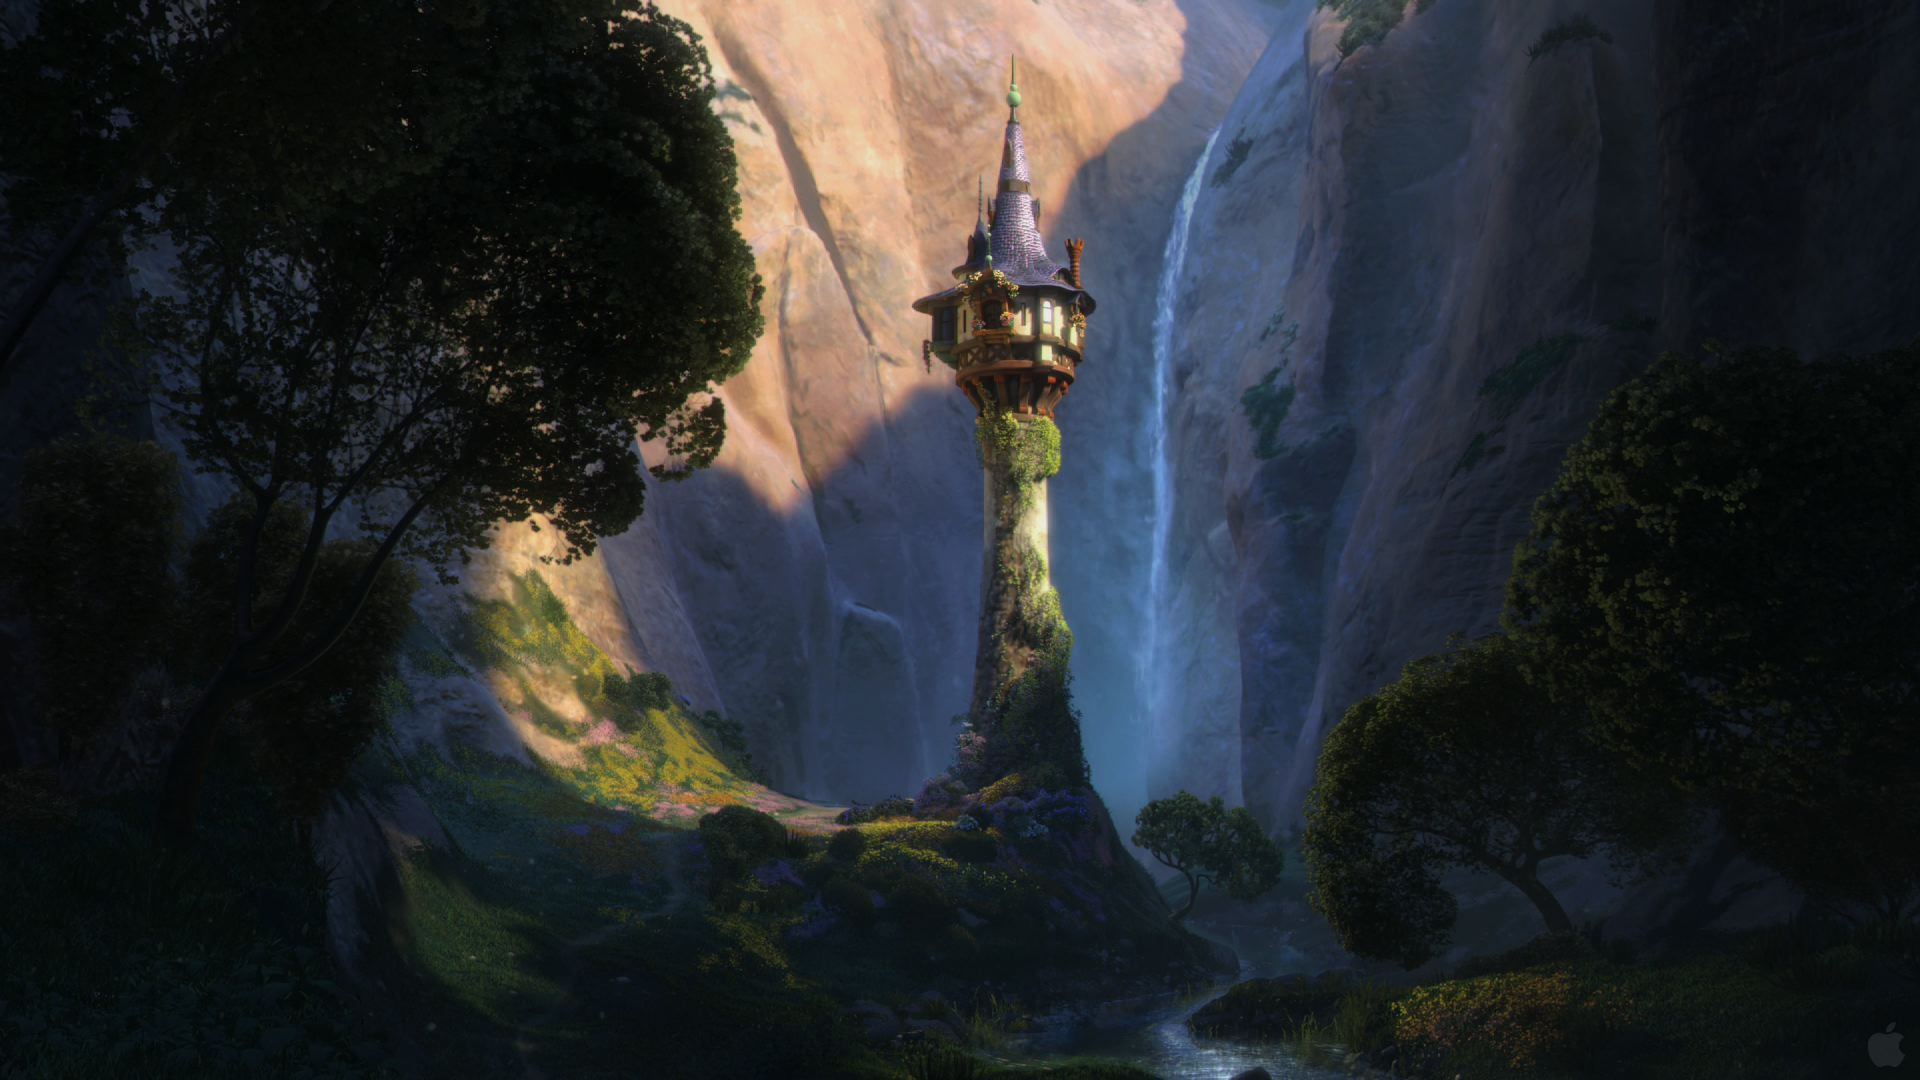 disney-tangled-rapunzels-tower-wallpaper.jpg